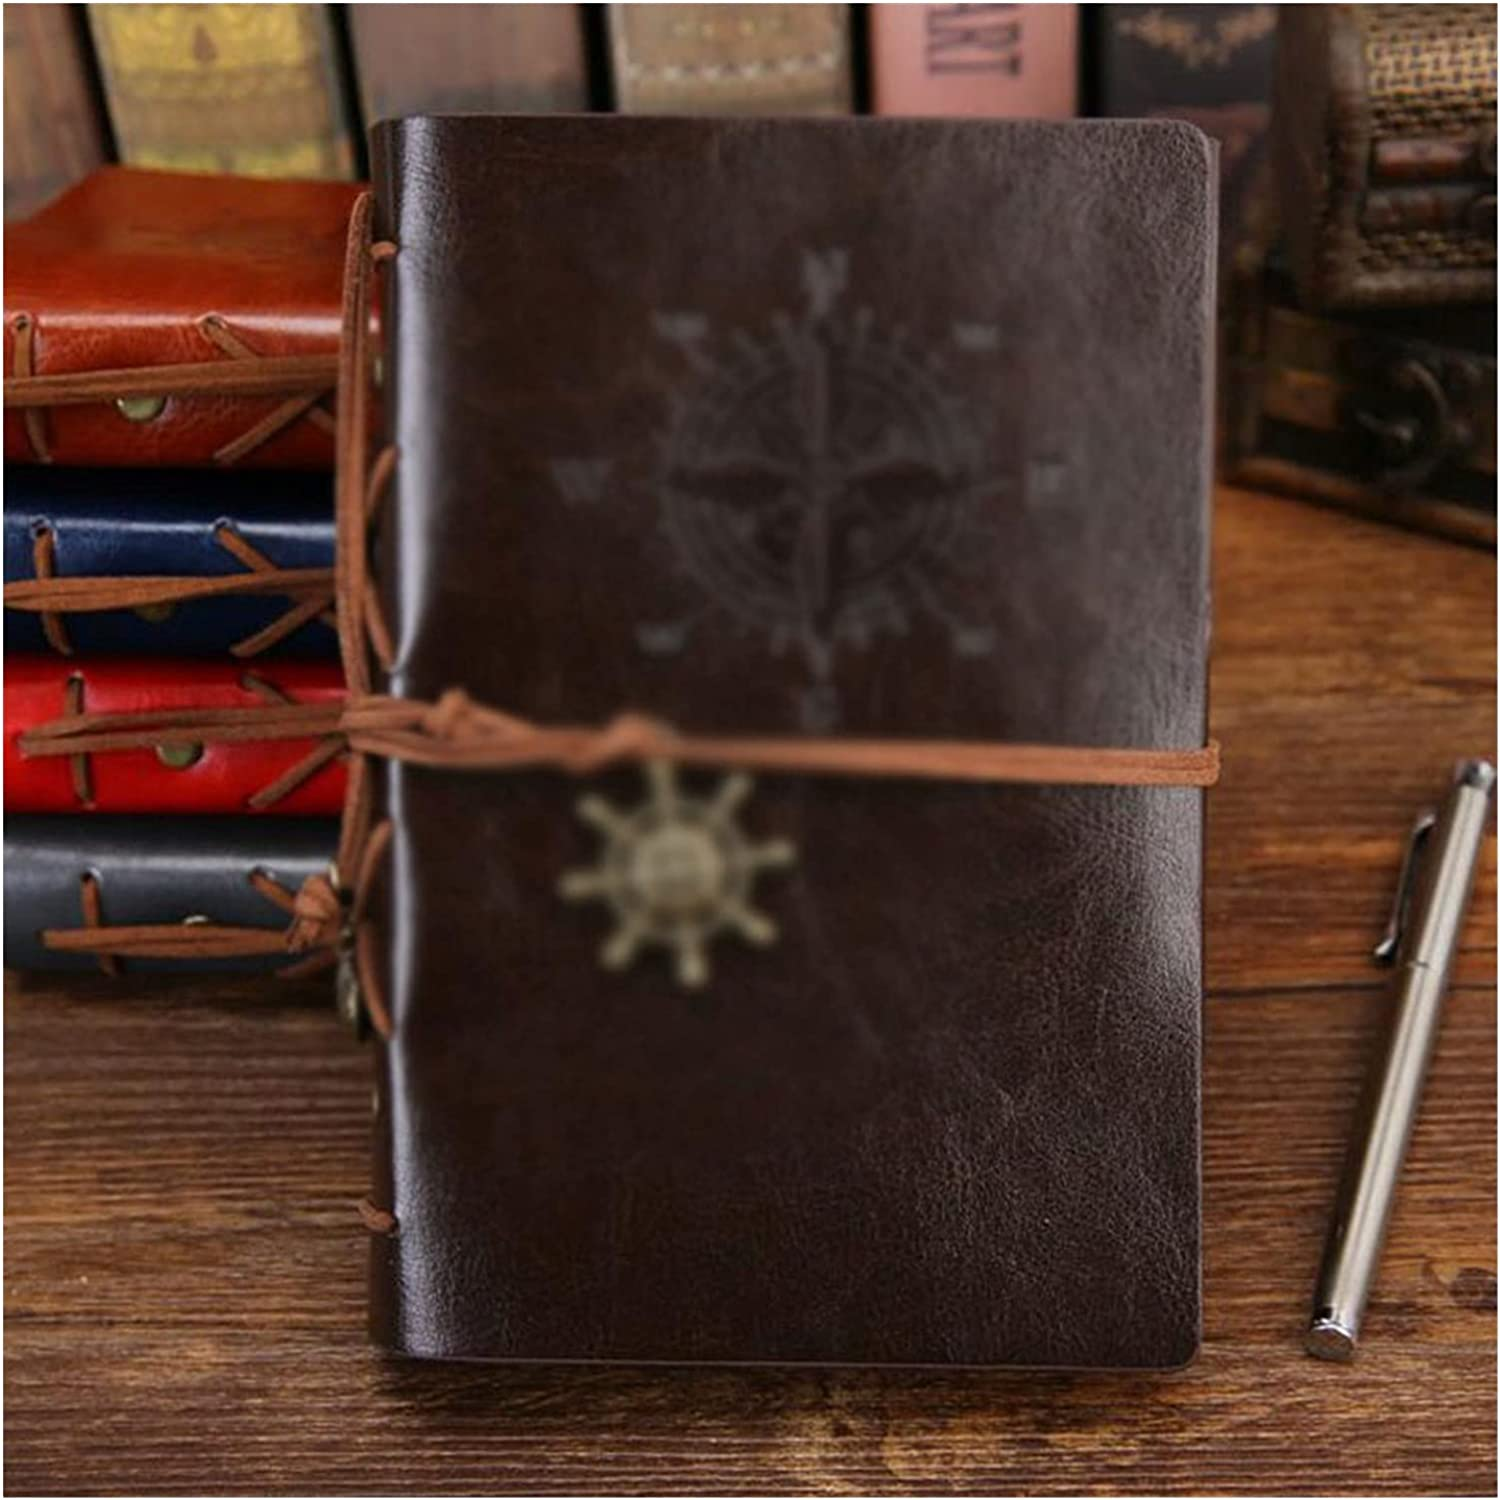 Notebook Retro Spiral Diary Vintage Pirate New life Notepad Manufacturer OFFicial shop Anch